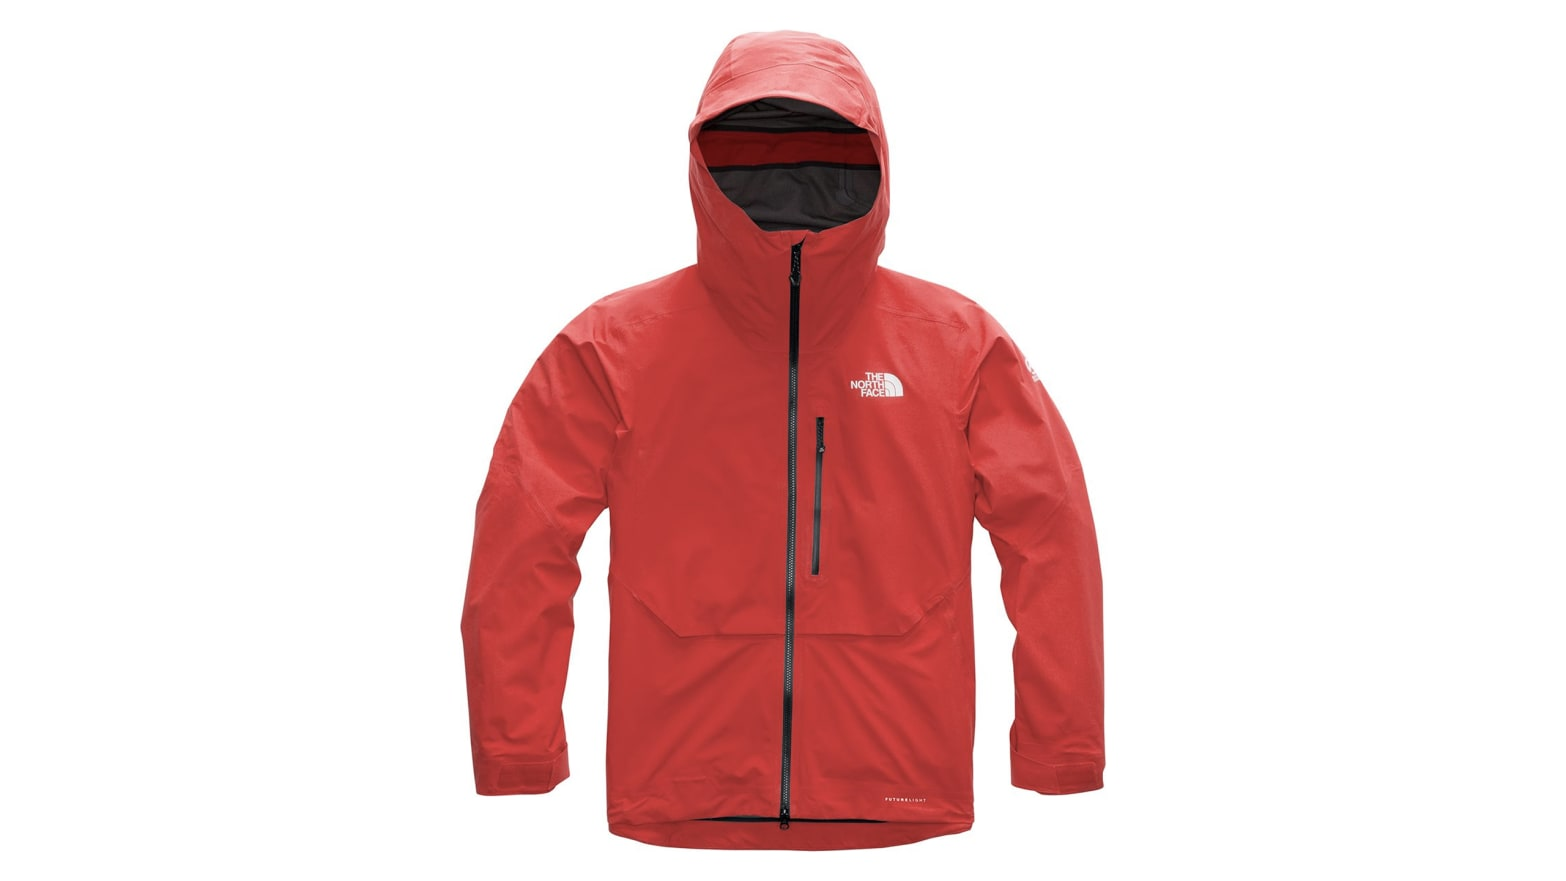 The North Face Futurelight Jacket Put to the Wind and Rain Test